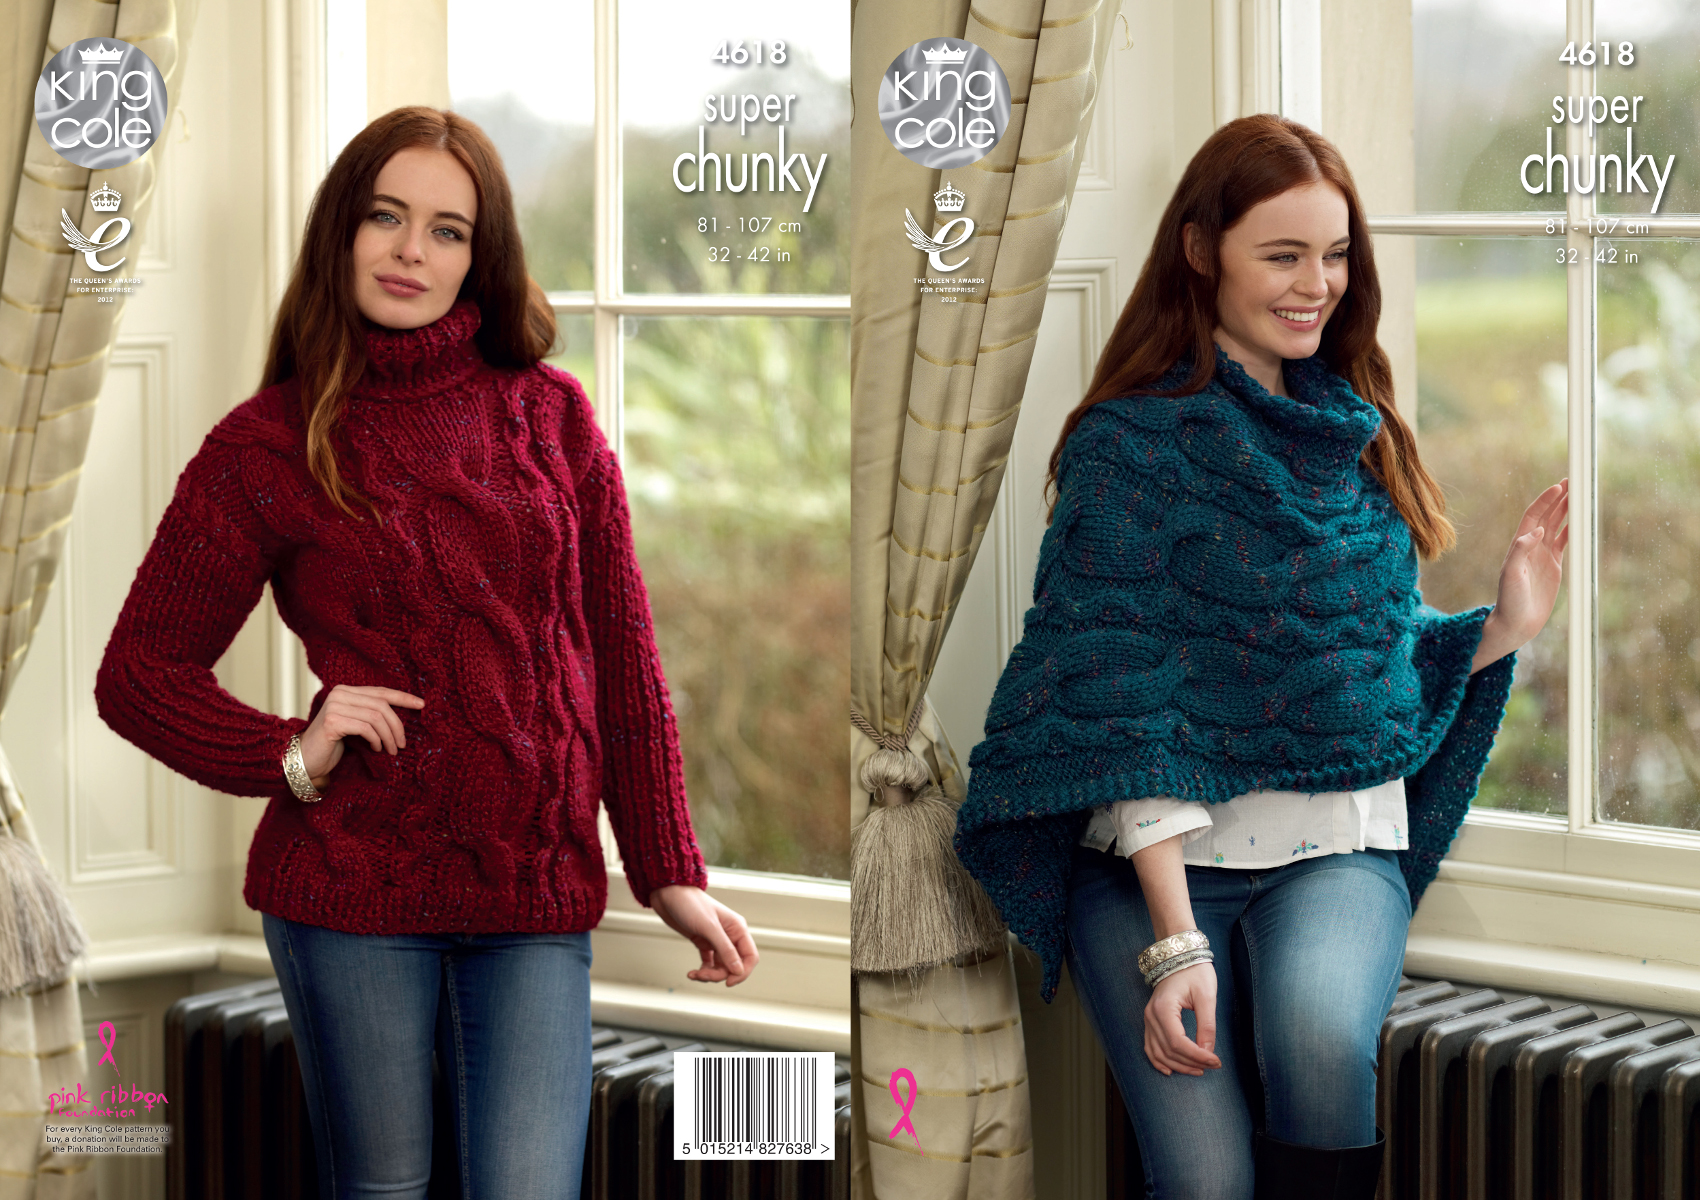 5fbc6d558 Details about Ladies Super Chunky Knitting Pattern King Cole Cabled Poncho    Sweater 4618